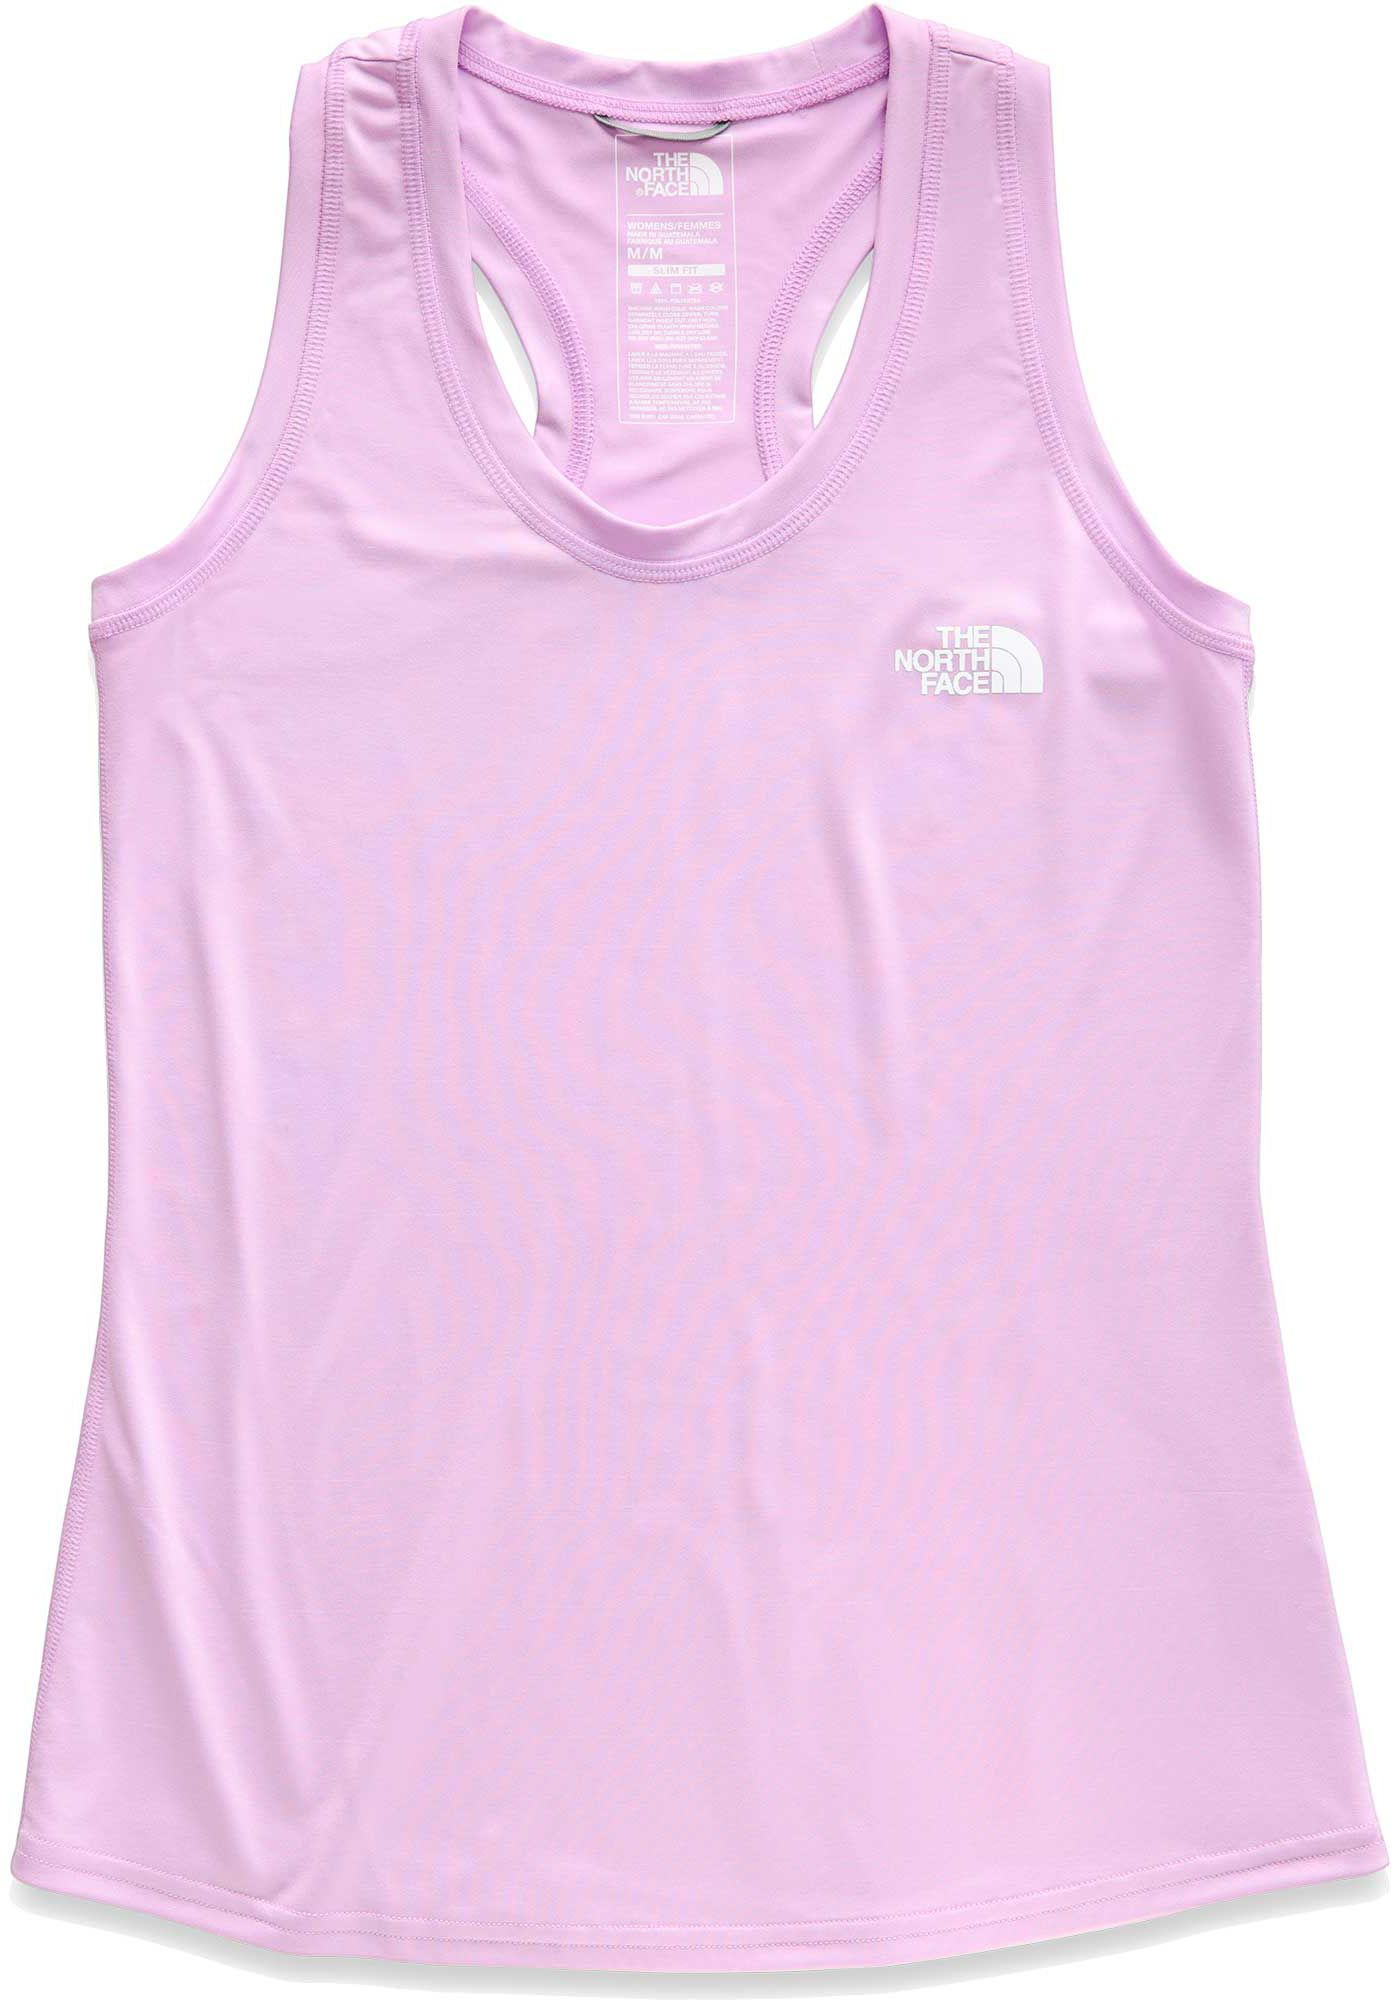 The North Face Women's Reaxion Amp Tank Top